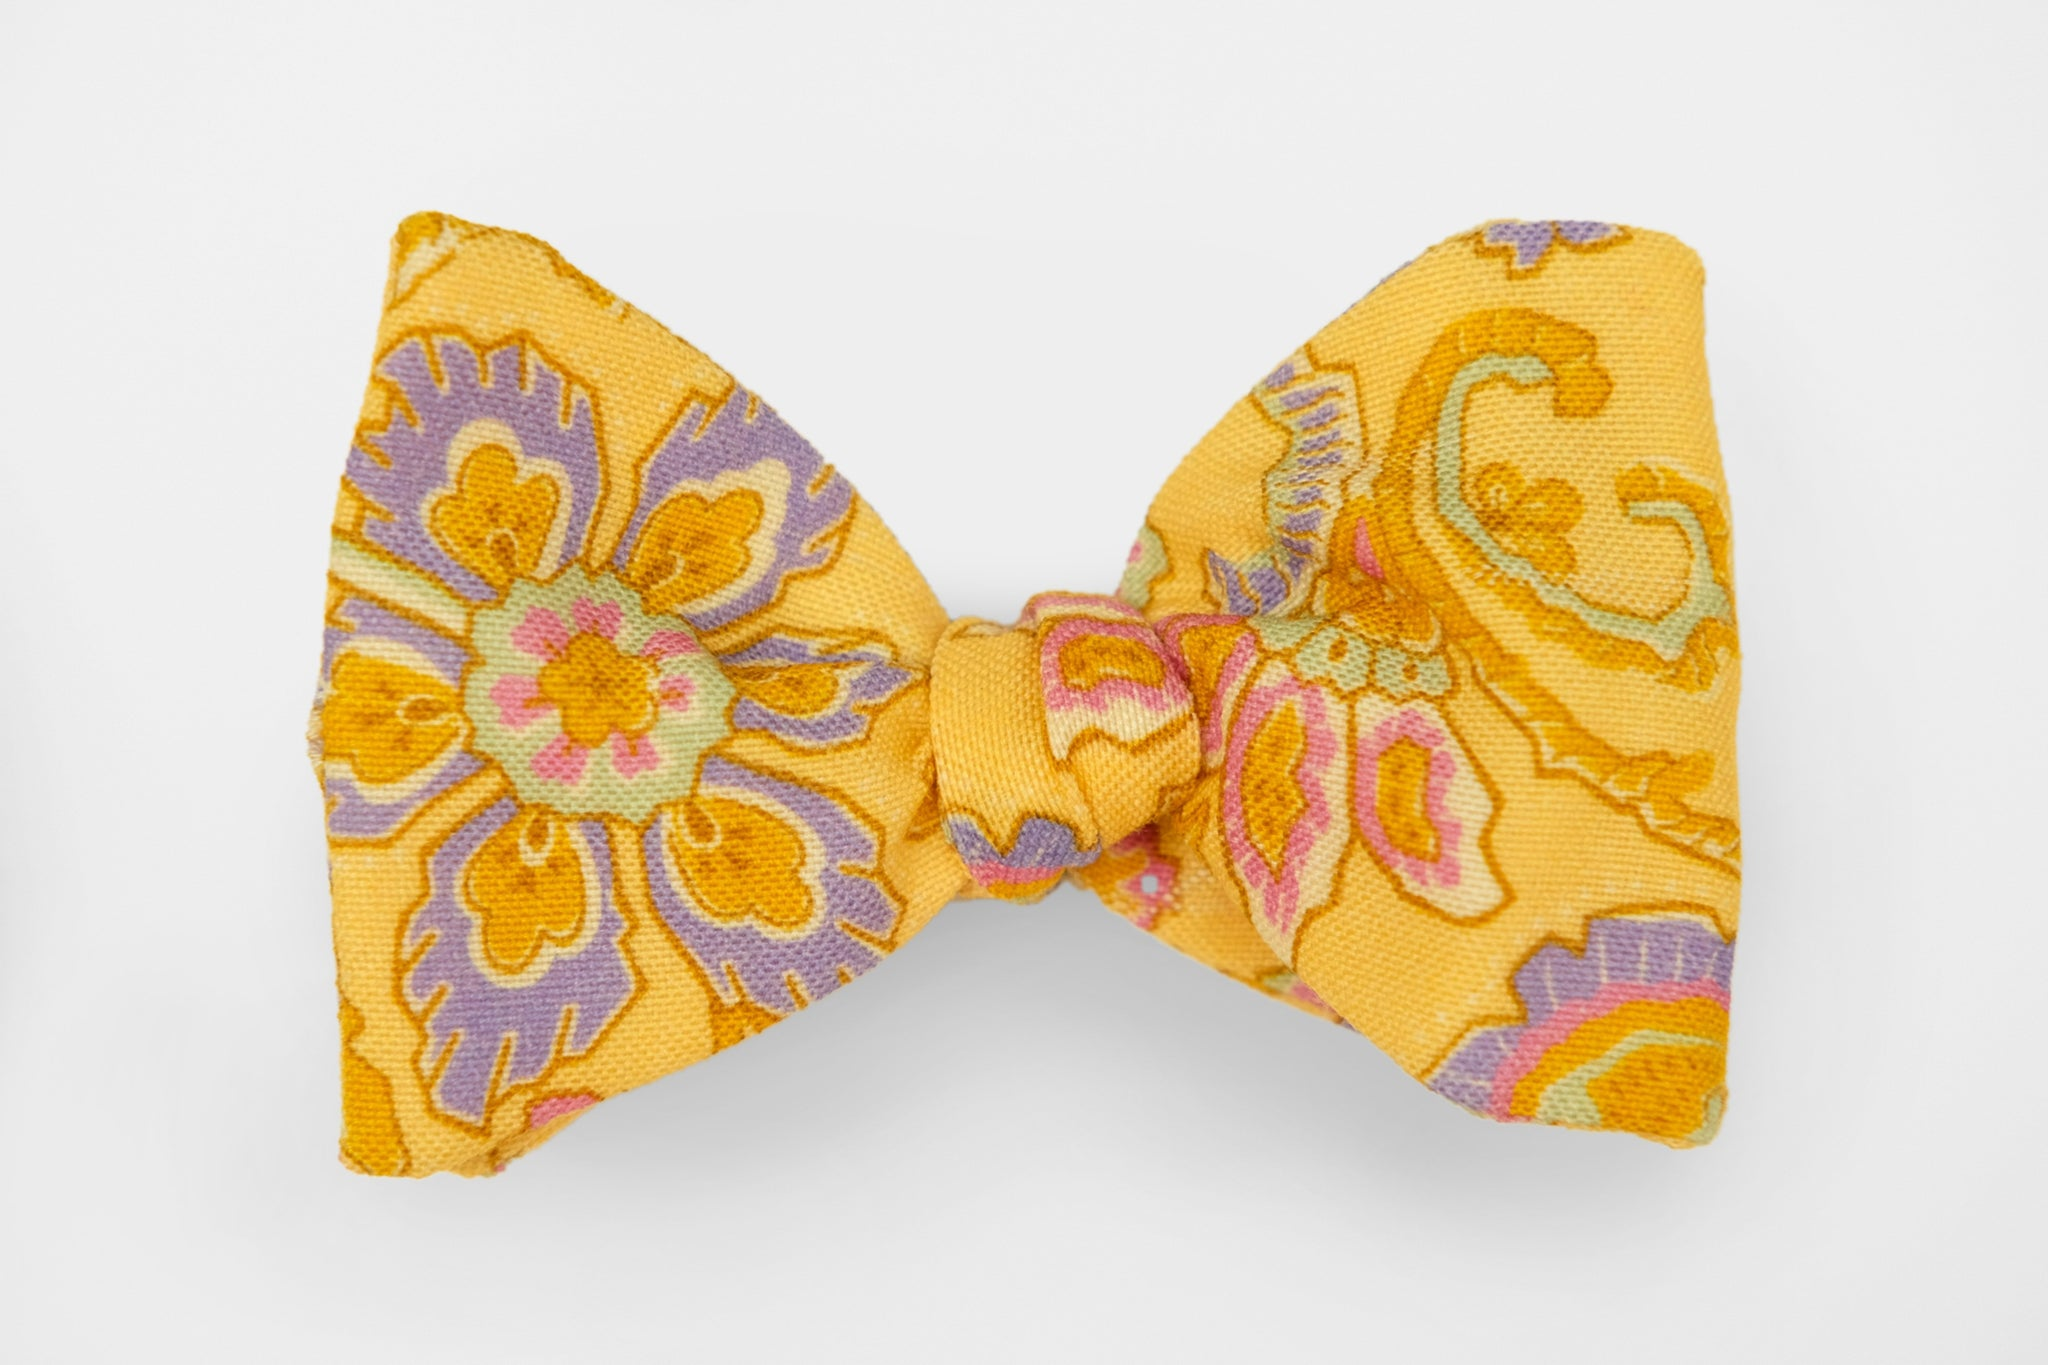 Big Floral on Bright Yellow Bow Tie